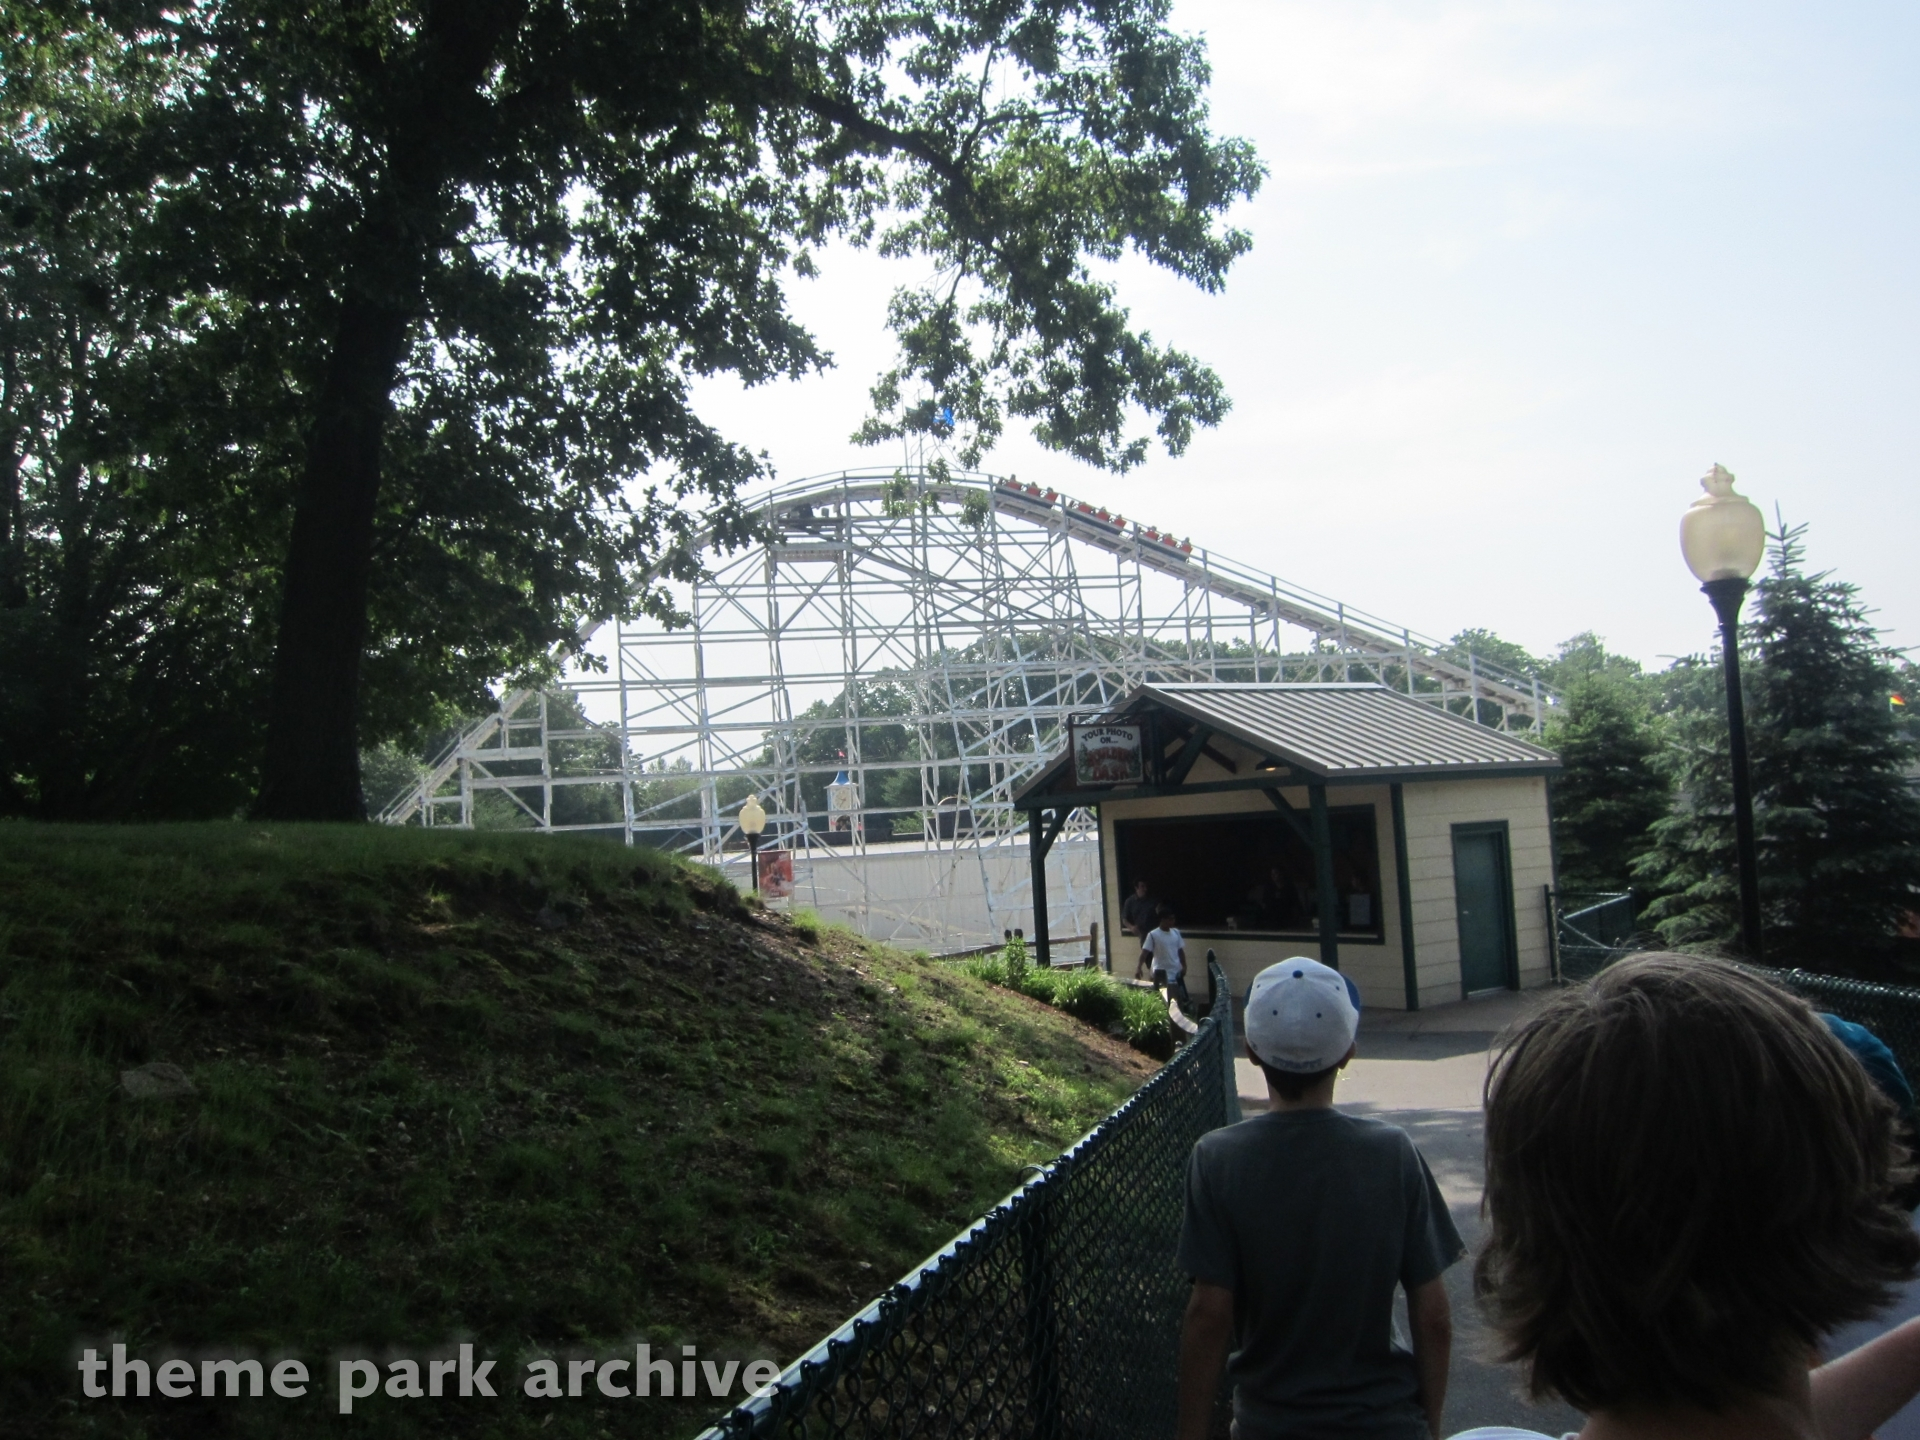 Wildcat at Lake Compounce